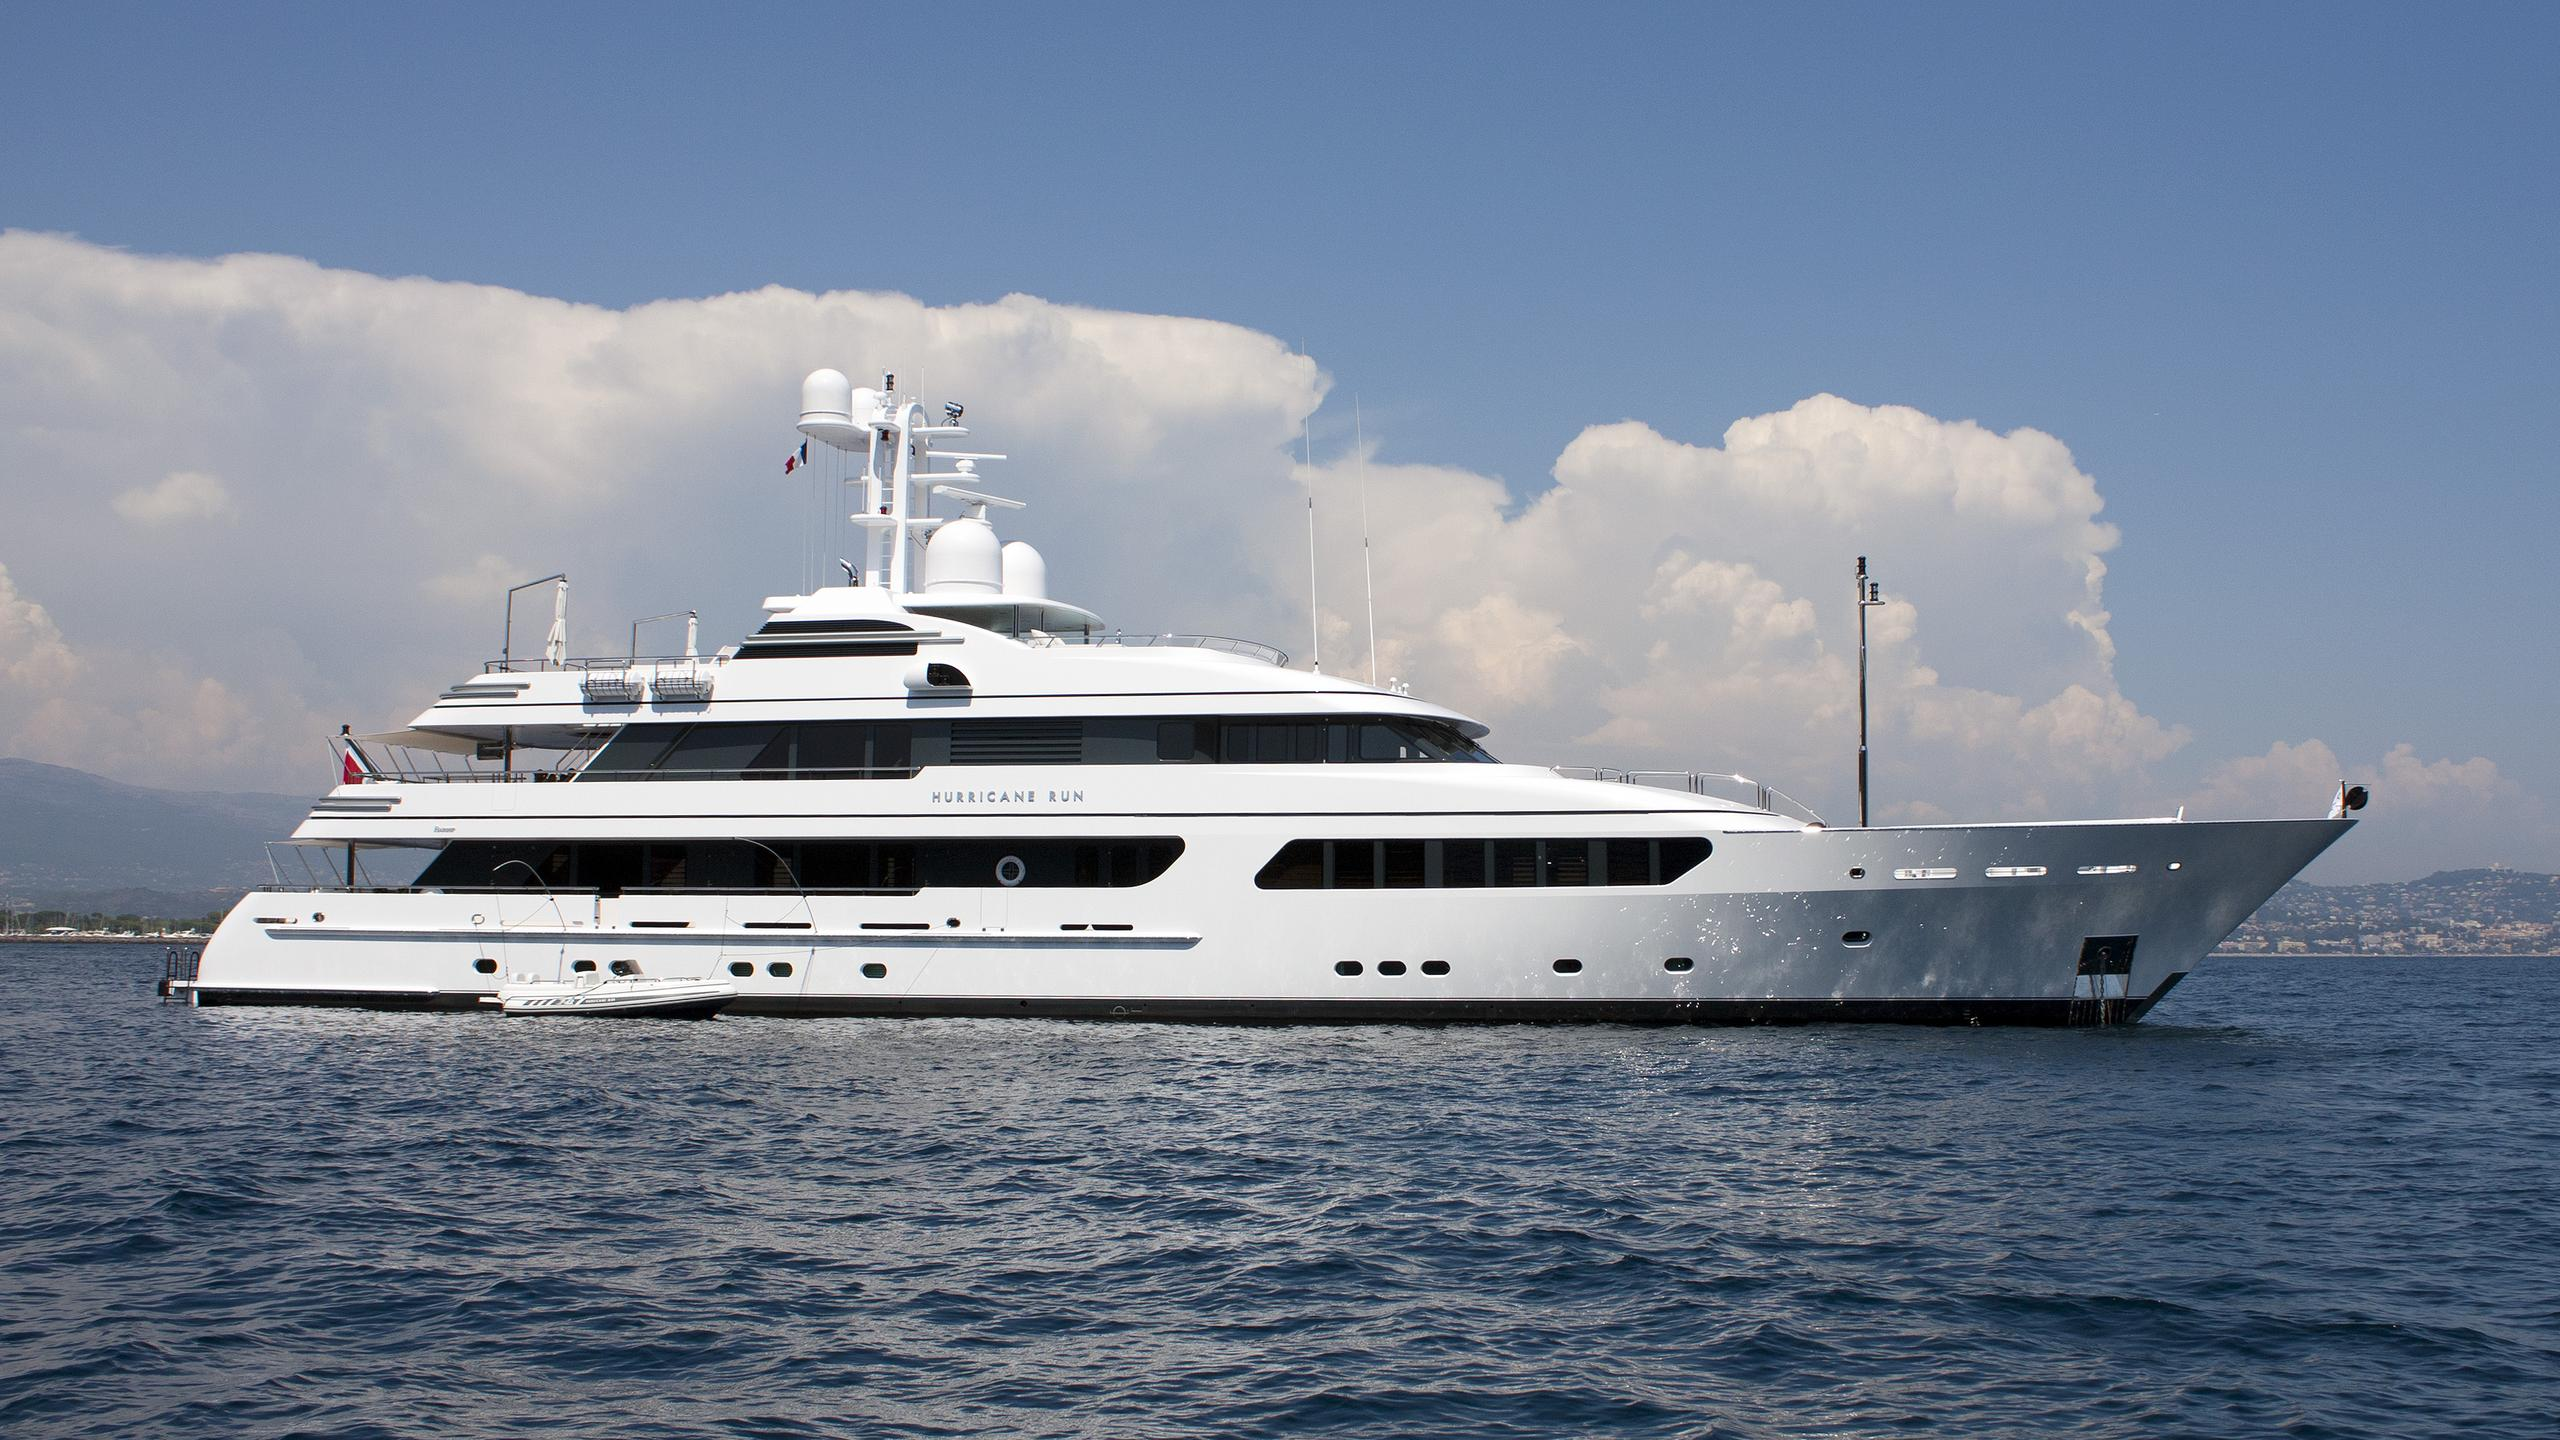 hurricane-run-motor-yacht-feadship-2009-53m-profile